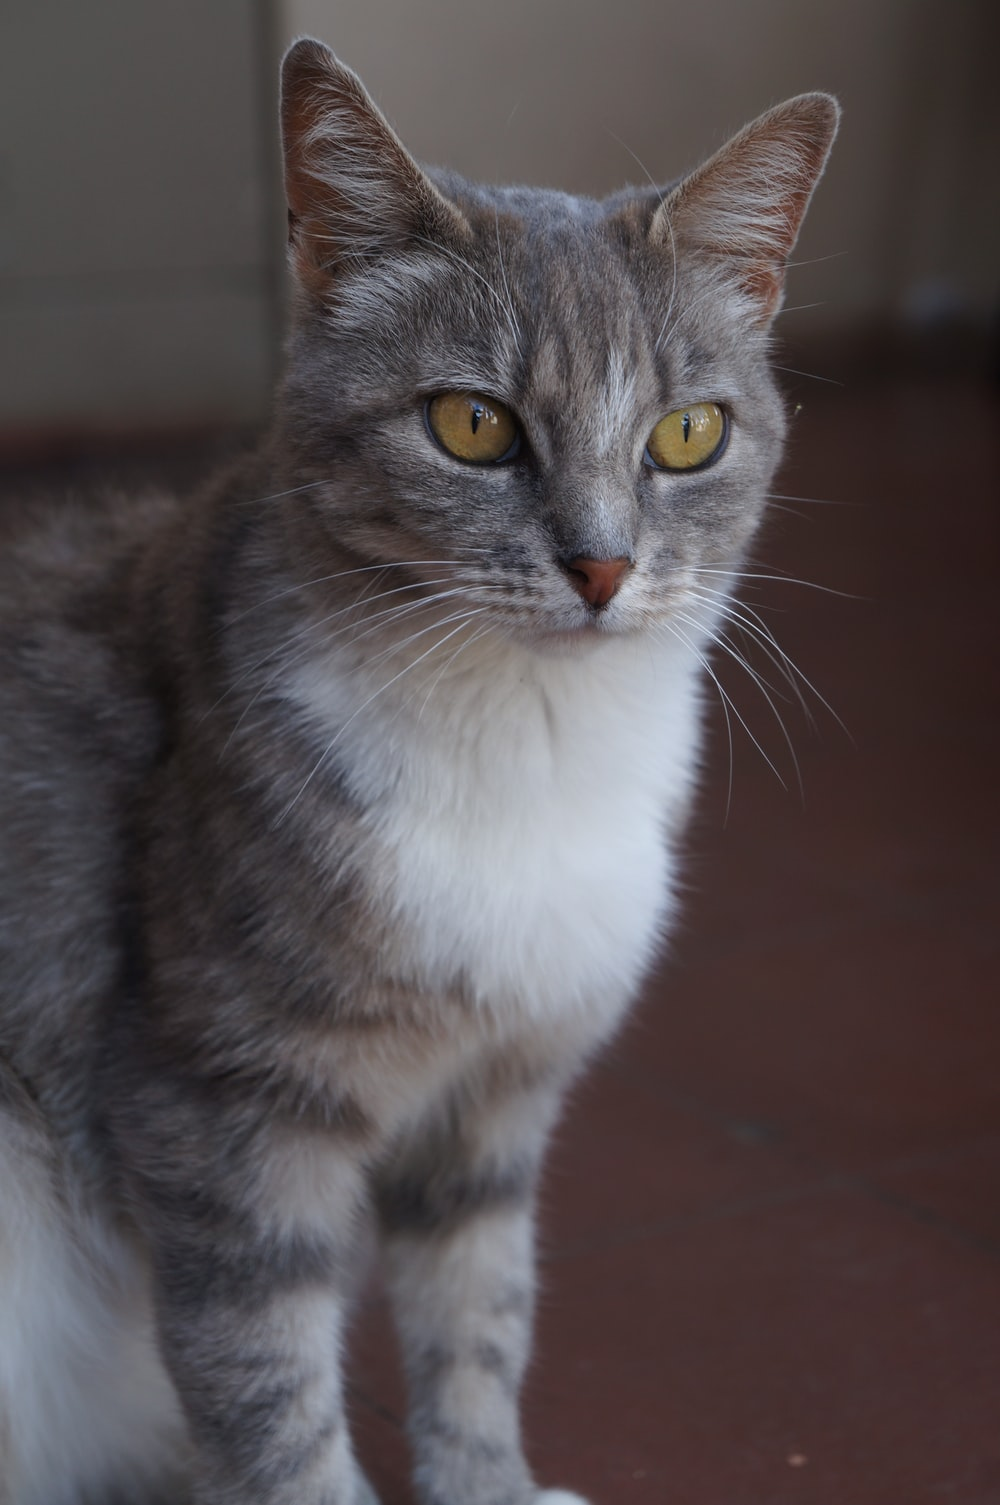 white and gray cat on brown floor